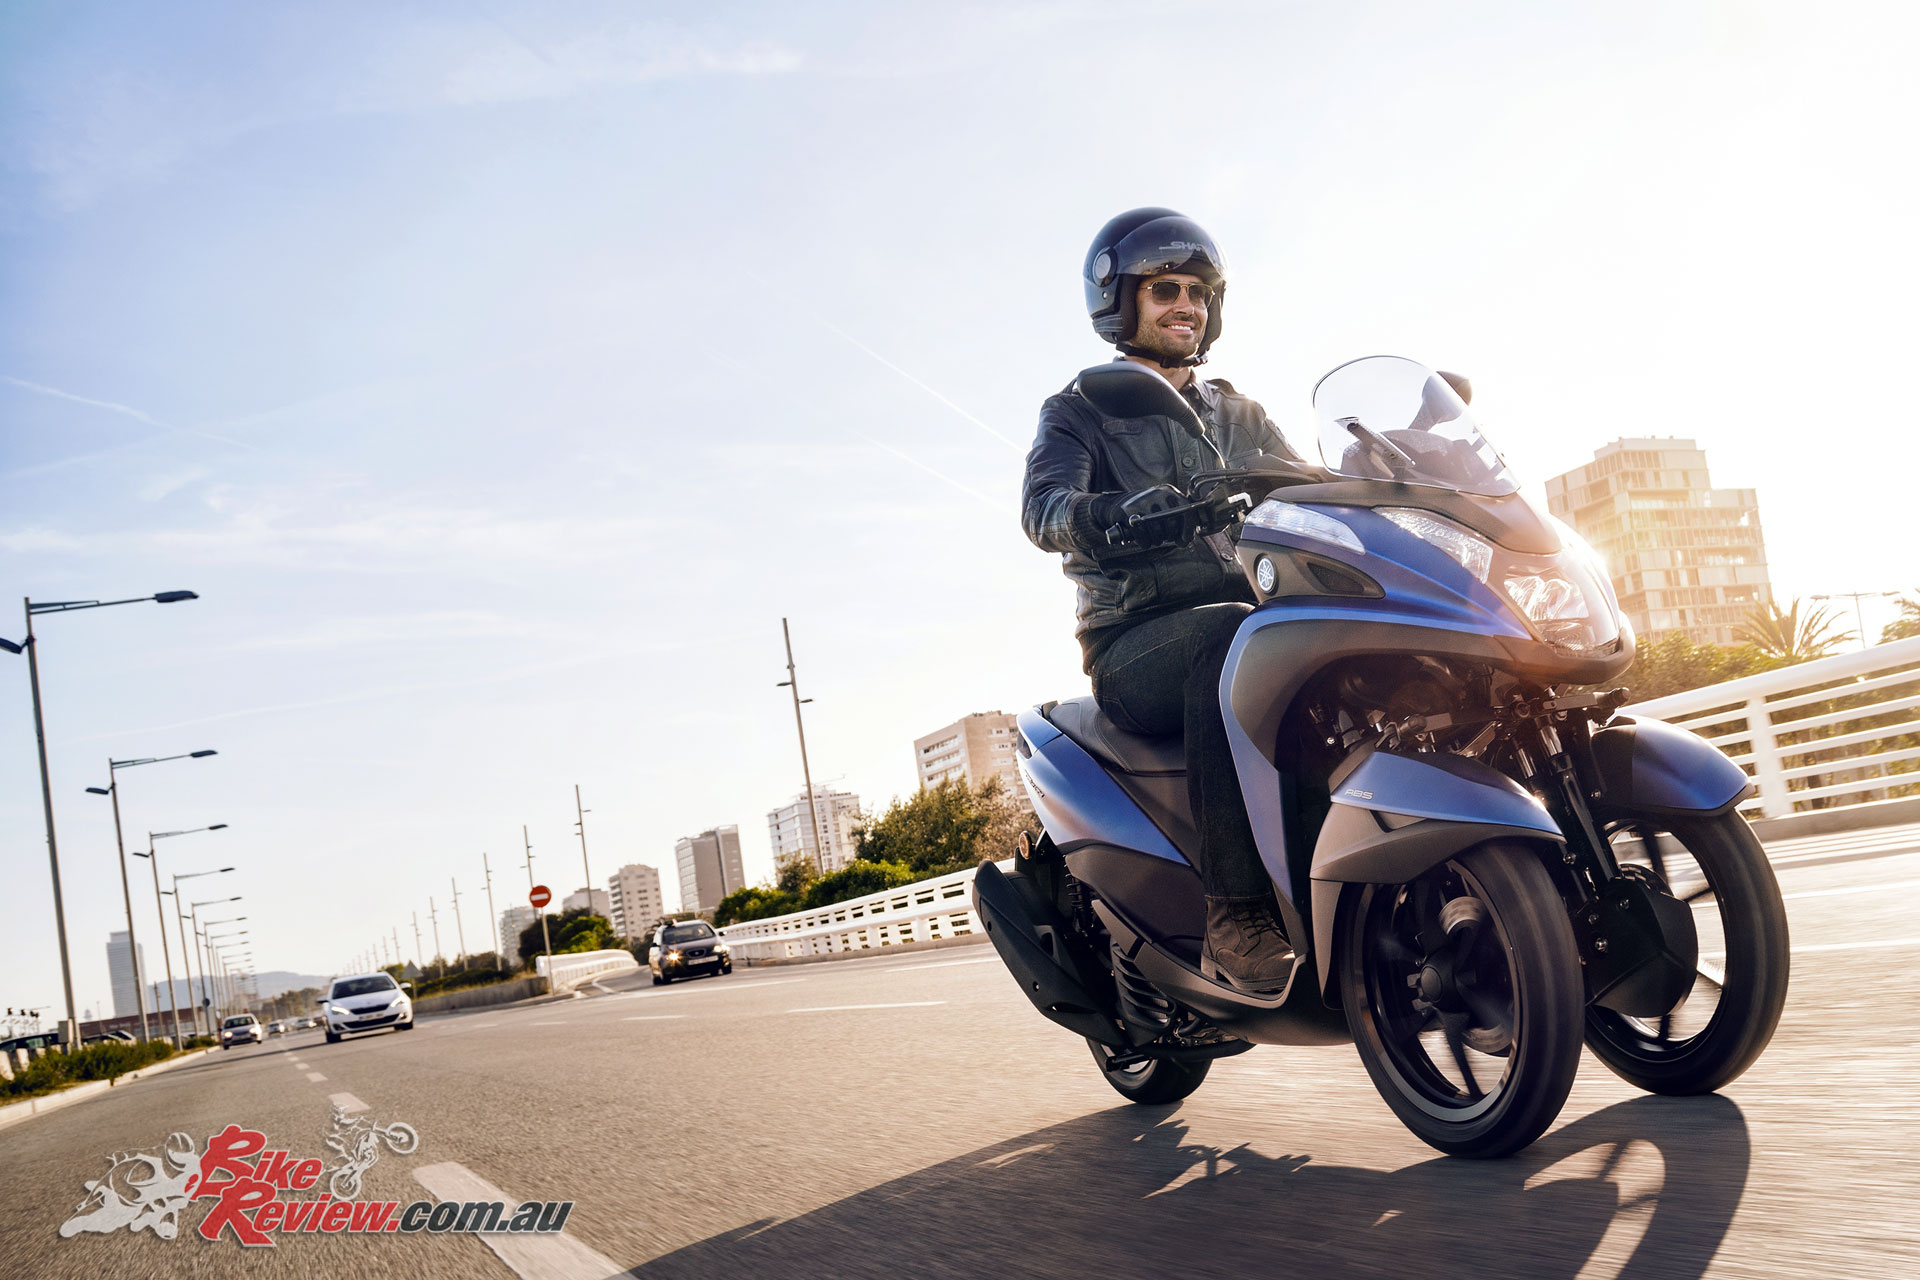 Yamaha's 2018 Tricity 155 features the new 155cc Blue Core powerplant and a new frame - Image courtesy of Yamaha Motor Europe